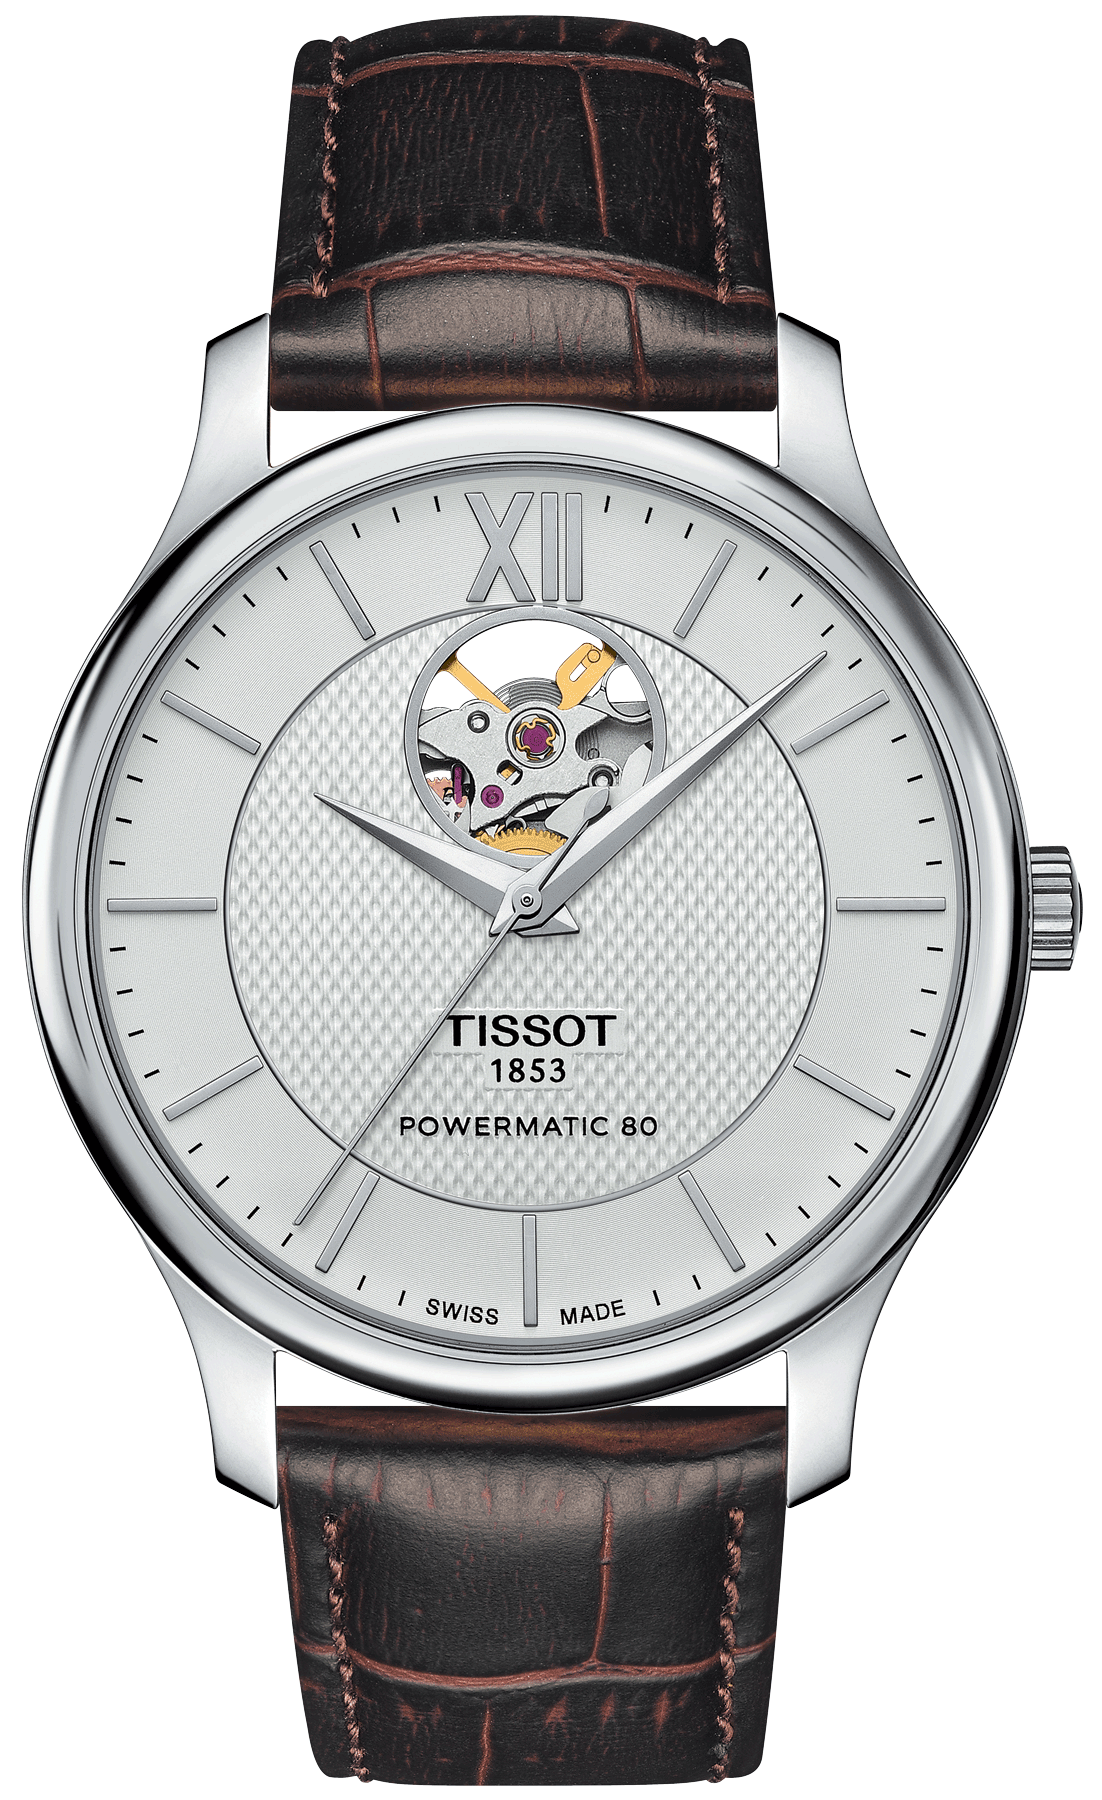 b88d970d988 Tissot TISSOT TRADITION POWERMATIC 80 OP. HEART - T063.907.16.038.00    Boutique dos Relógios